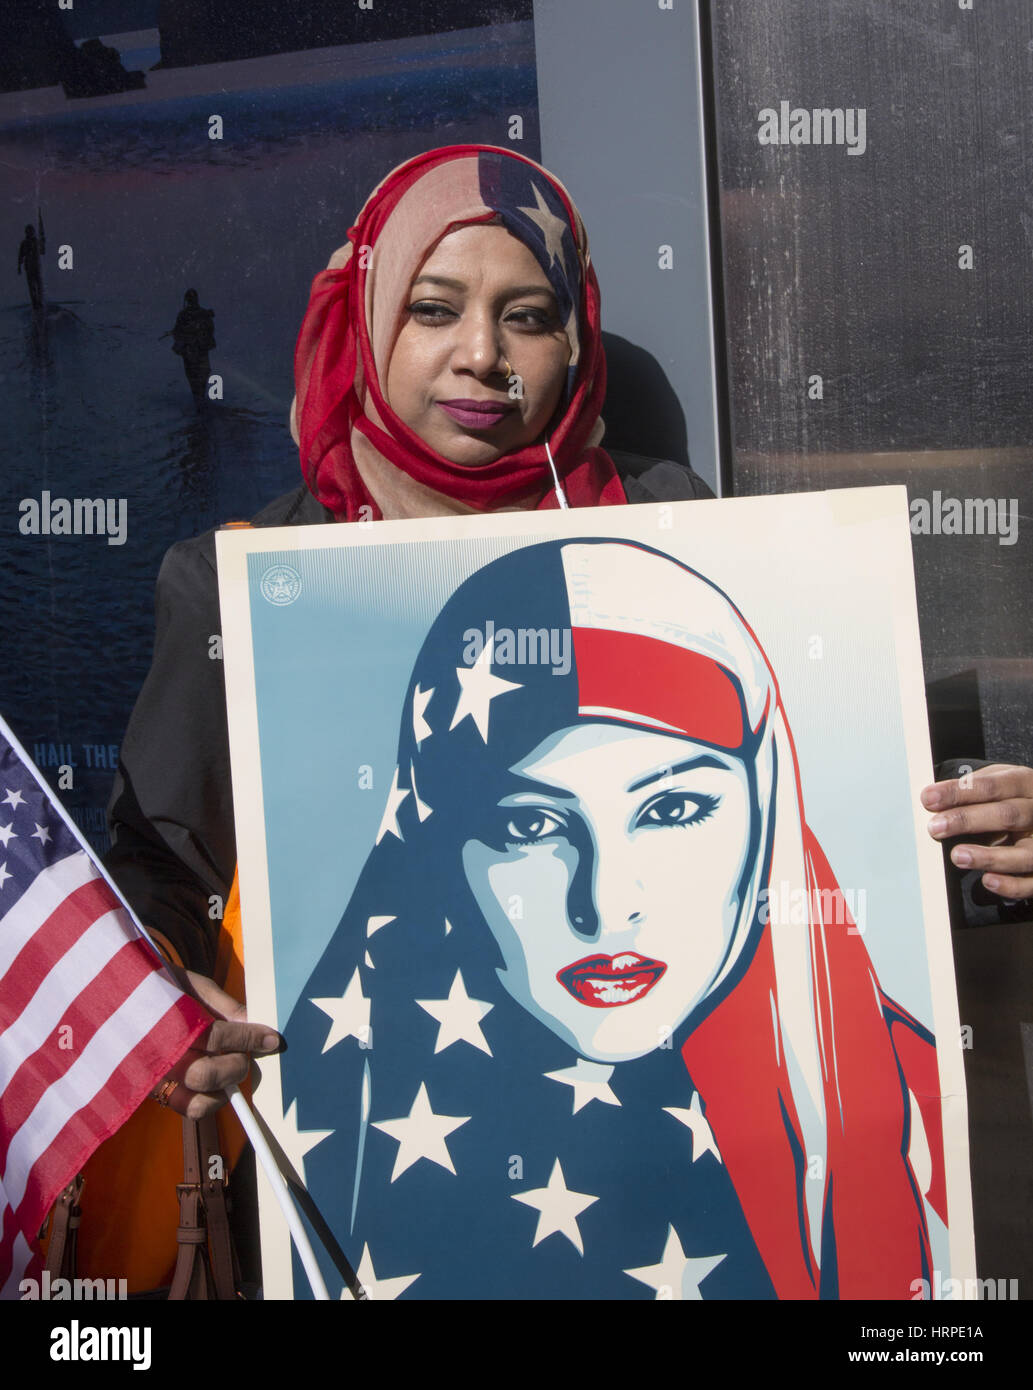 New Yorkers turned out in large numbers to support the 'I Am A Muslim' demonstration in Times Square in - Stock Image